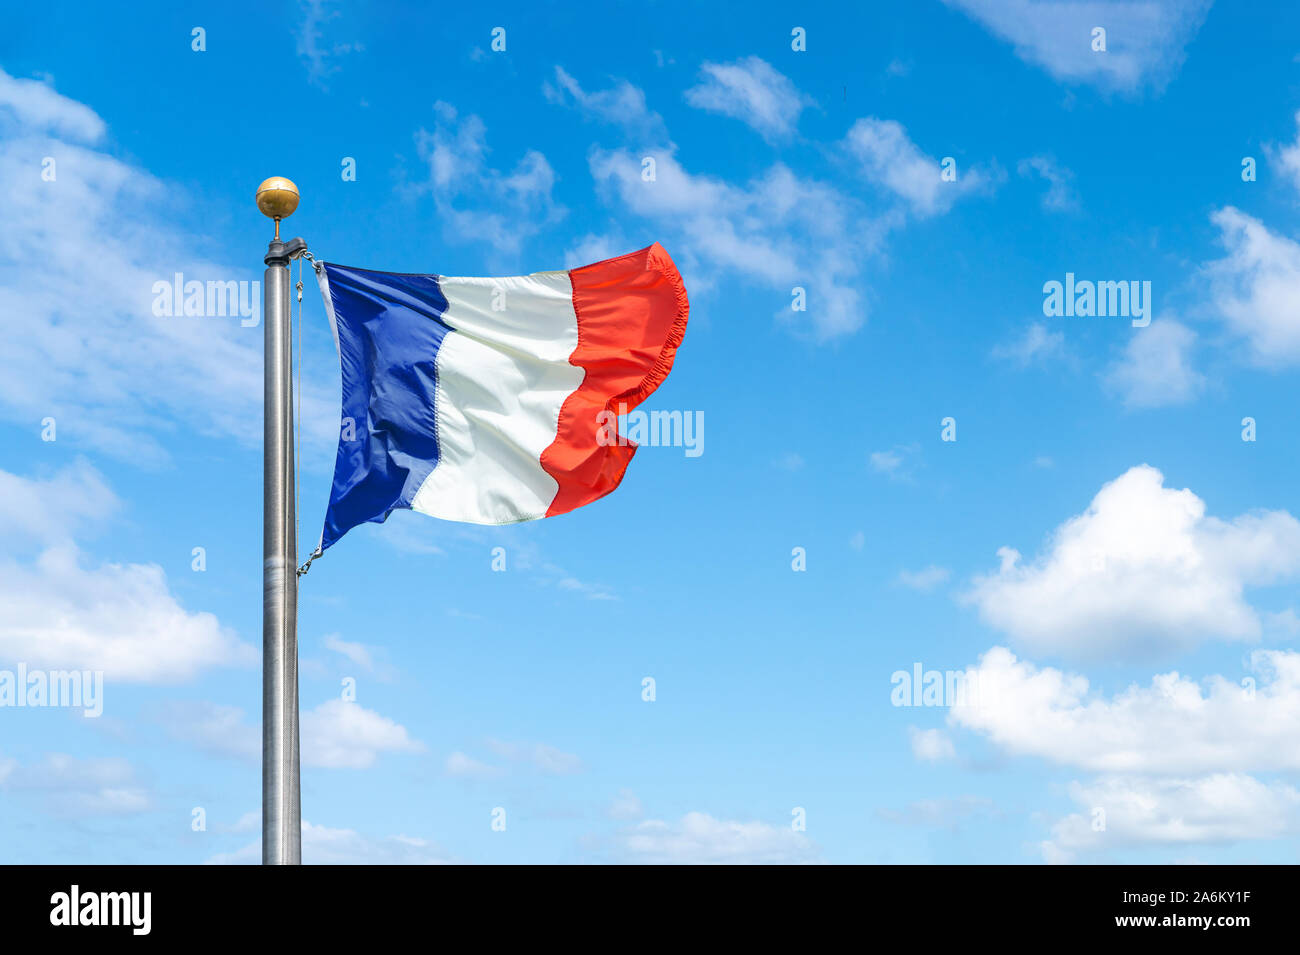 French flag against a blue sky background Stock Photo